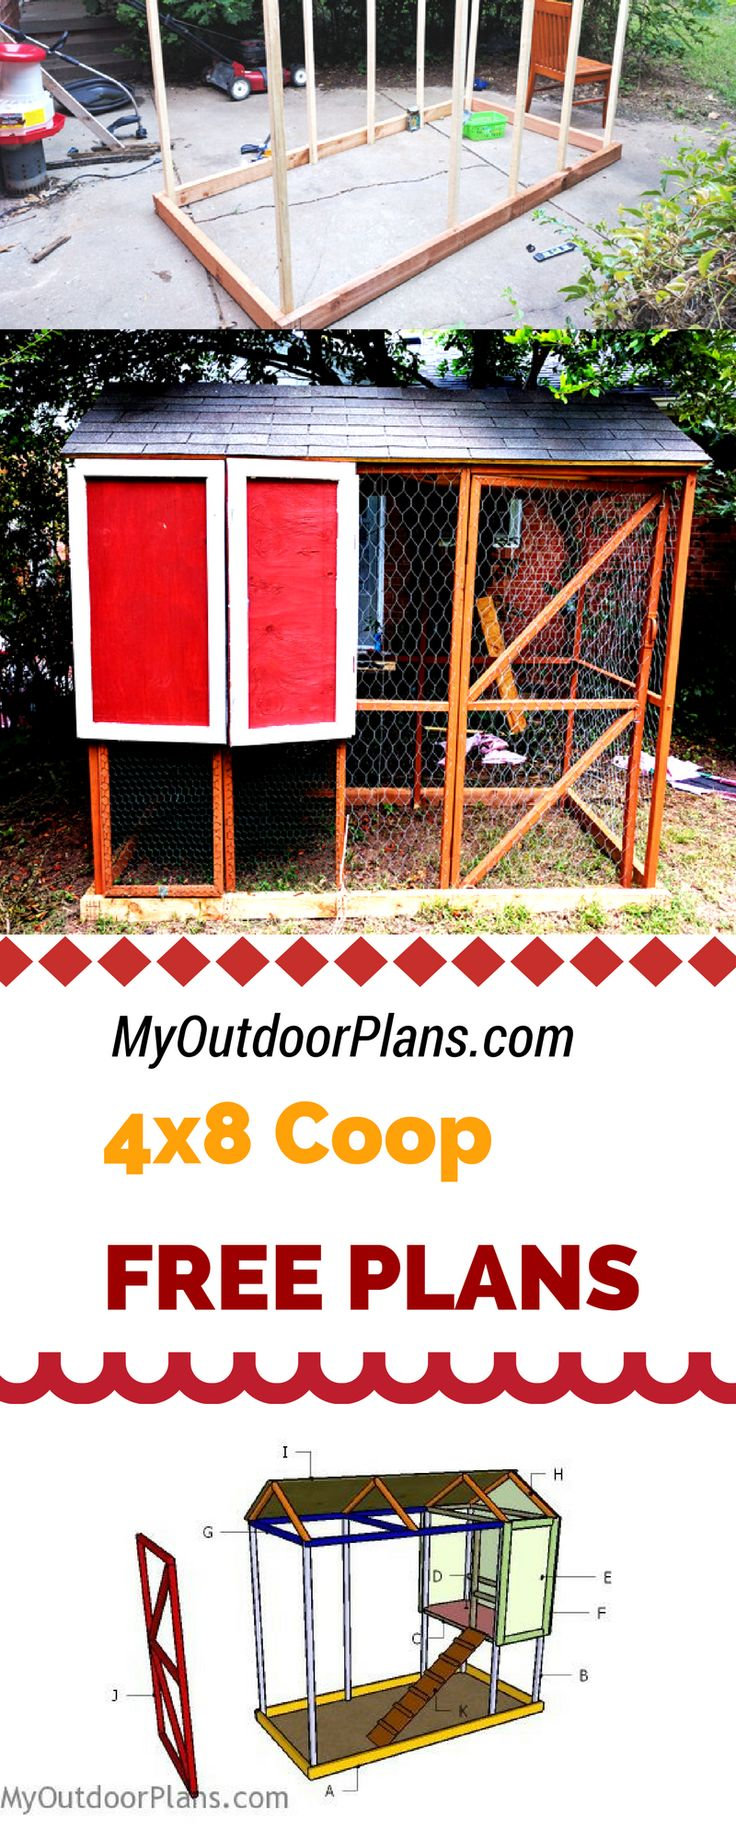 Learn how to build a 4x8 chicken coop in your own backyard! Use my free chicken coop plans and instructions to make a chicken coop with run in one weekend! myoutdoorplans.com #diy #chicken